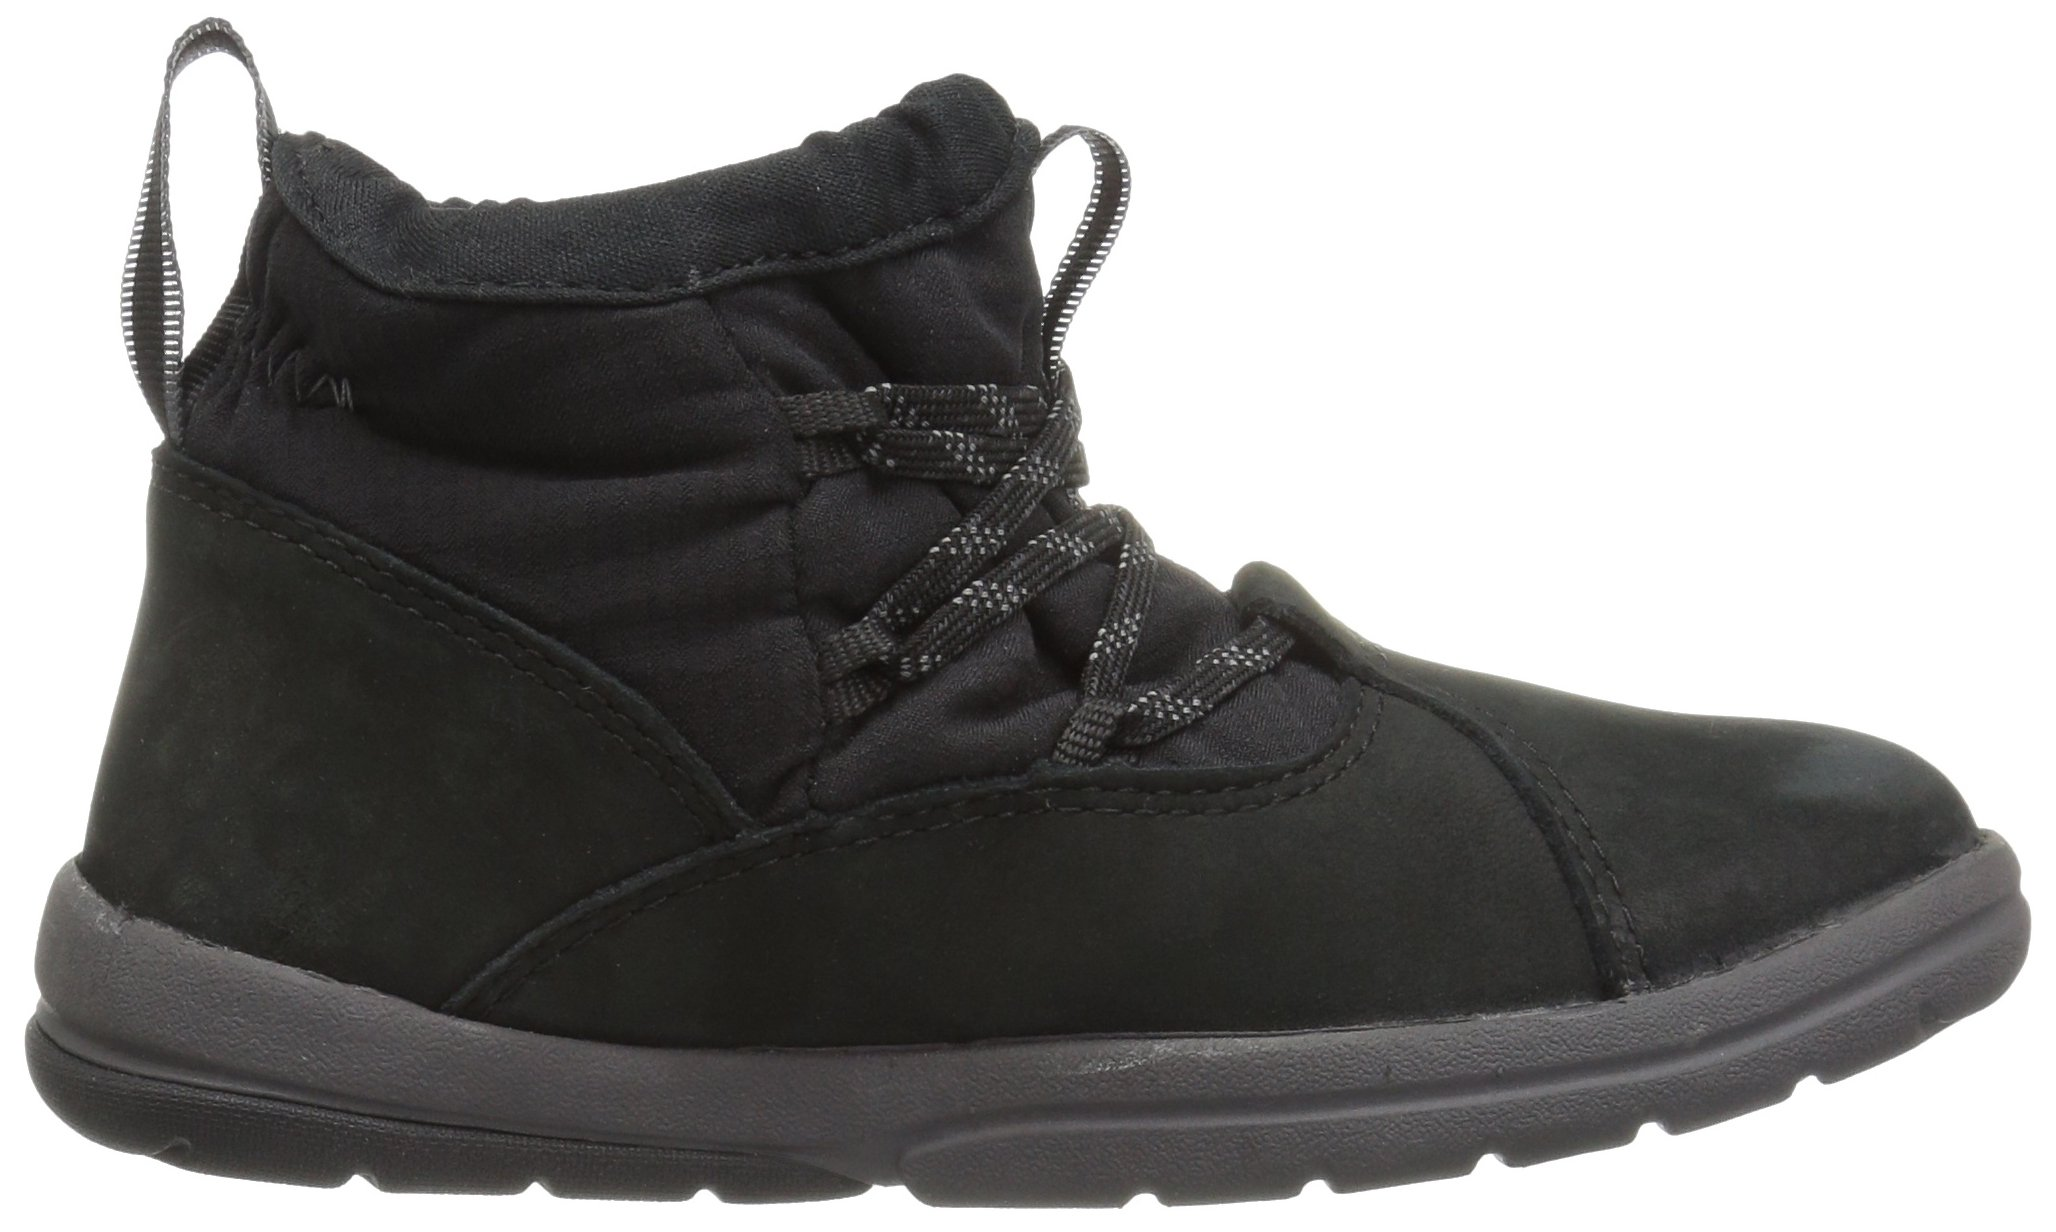 Timberland Unisex Toddle Tracks Warm Fabric Leather Bootie Snow Boot Black Nubuck 12 M US Little Kid by Timberland (Image #7)